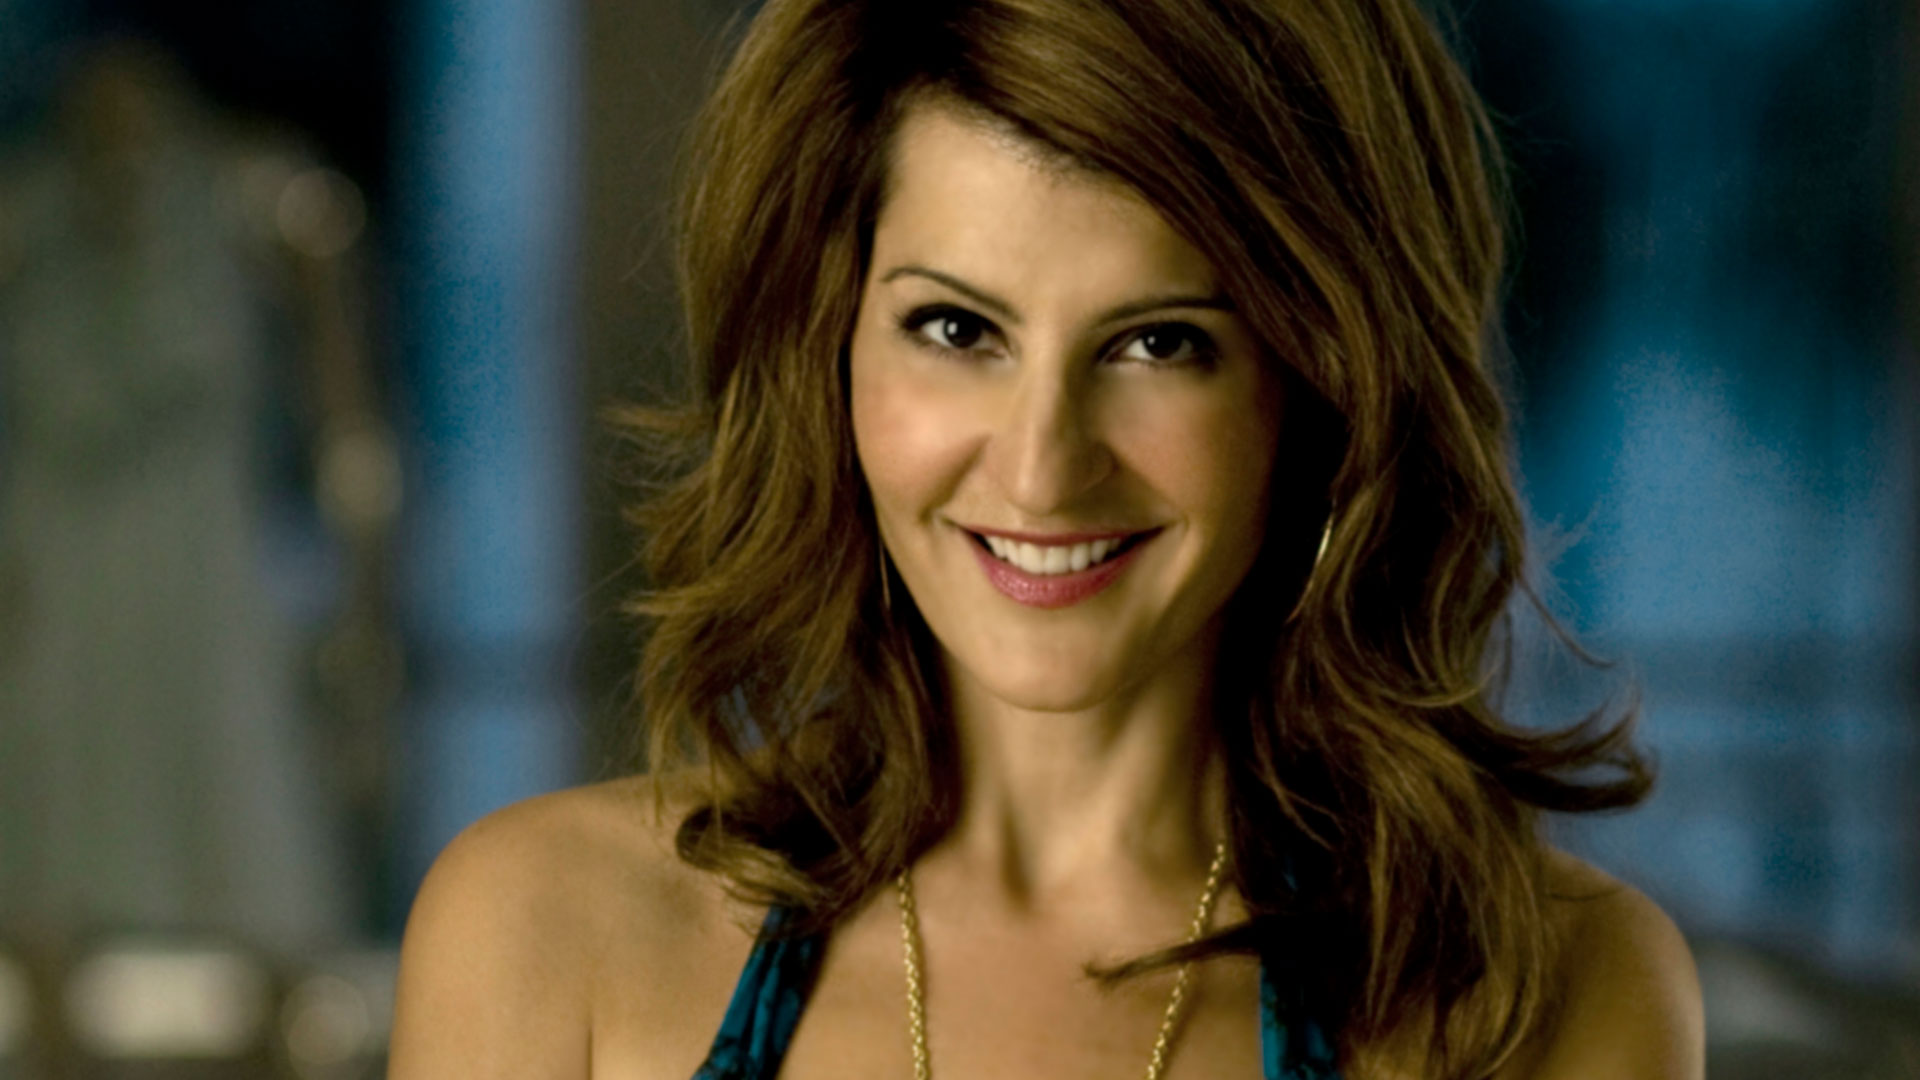 Nia Vardalos Download